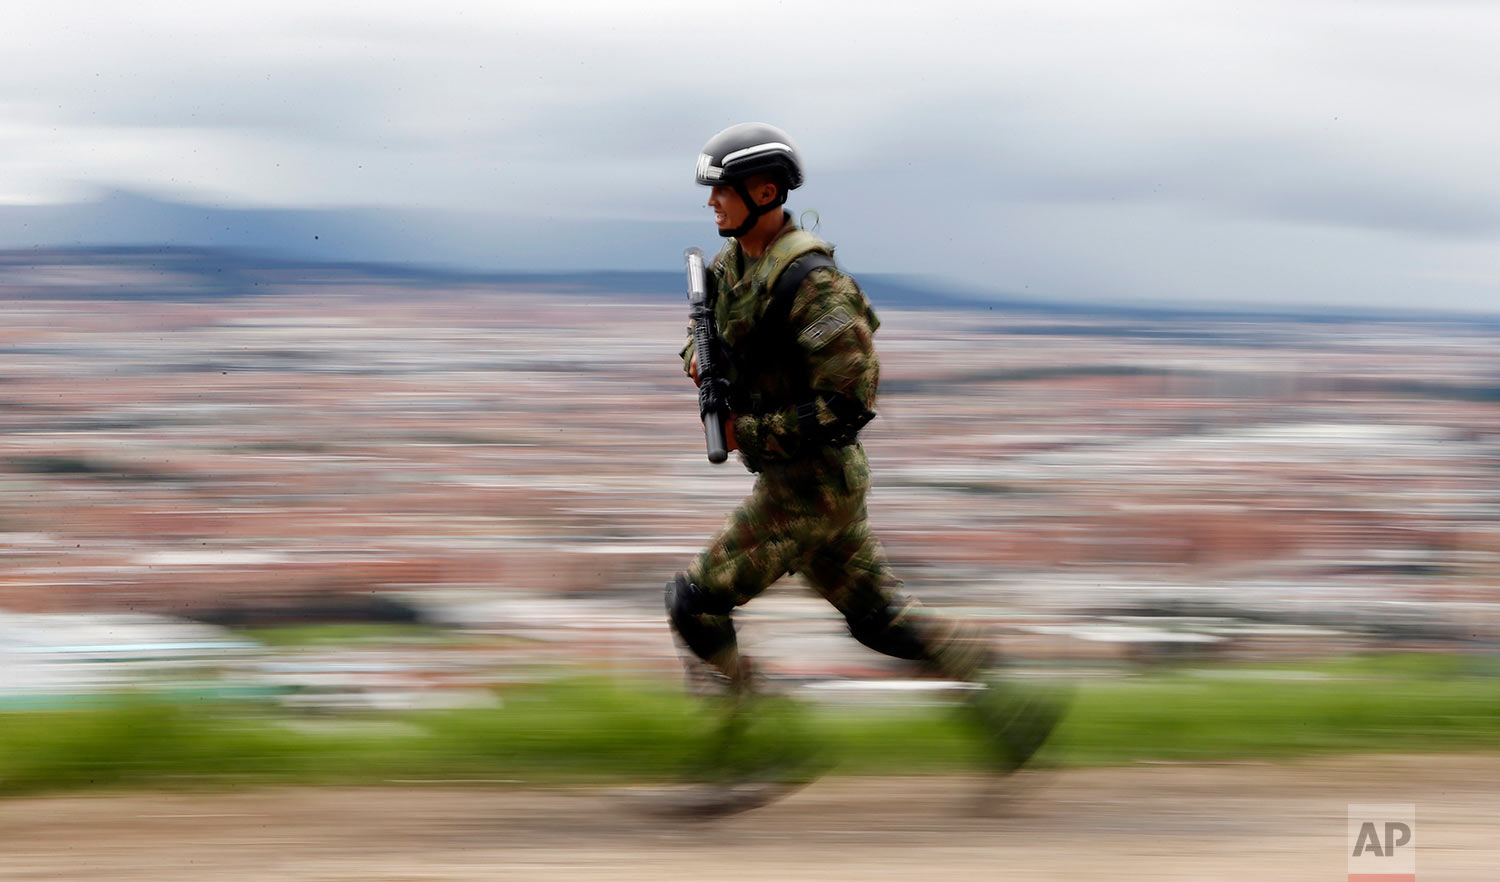 A solider runs to his position to secure a road as part of electoral security ahead of the presidential election on the outskirts of Bogota, Colombia, Saturday, May 26, 2018. (AP Photo/Fernando Vergara)